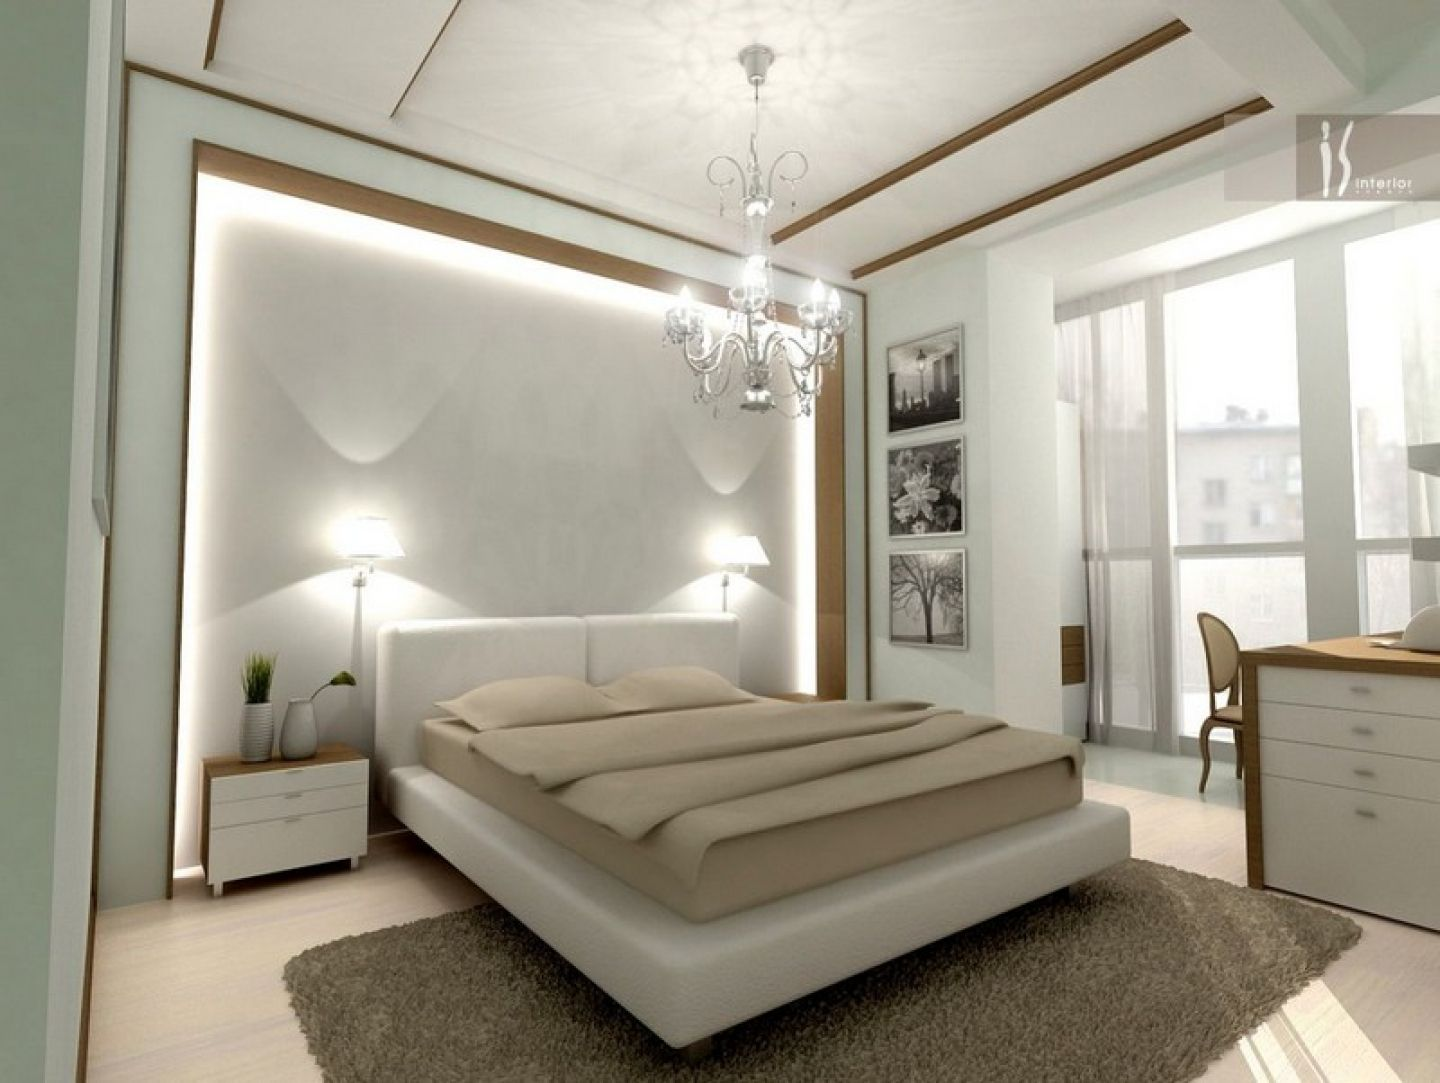 Romantic And Elegant Bedroom Design Ideas for Couple